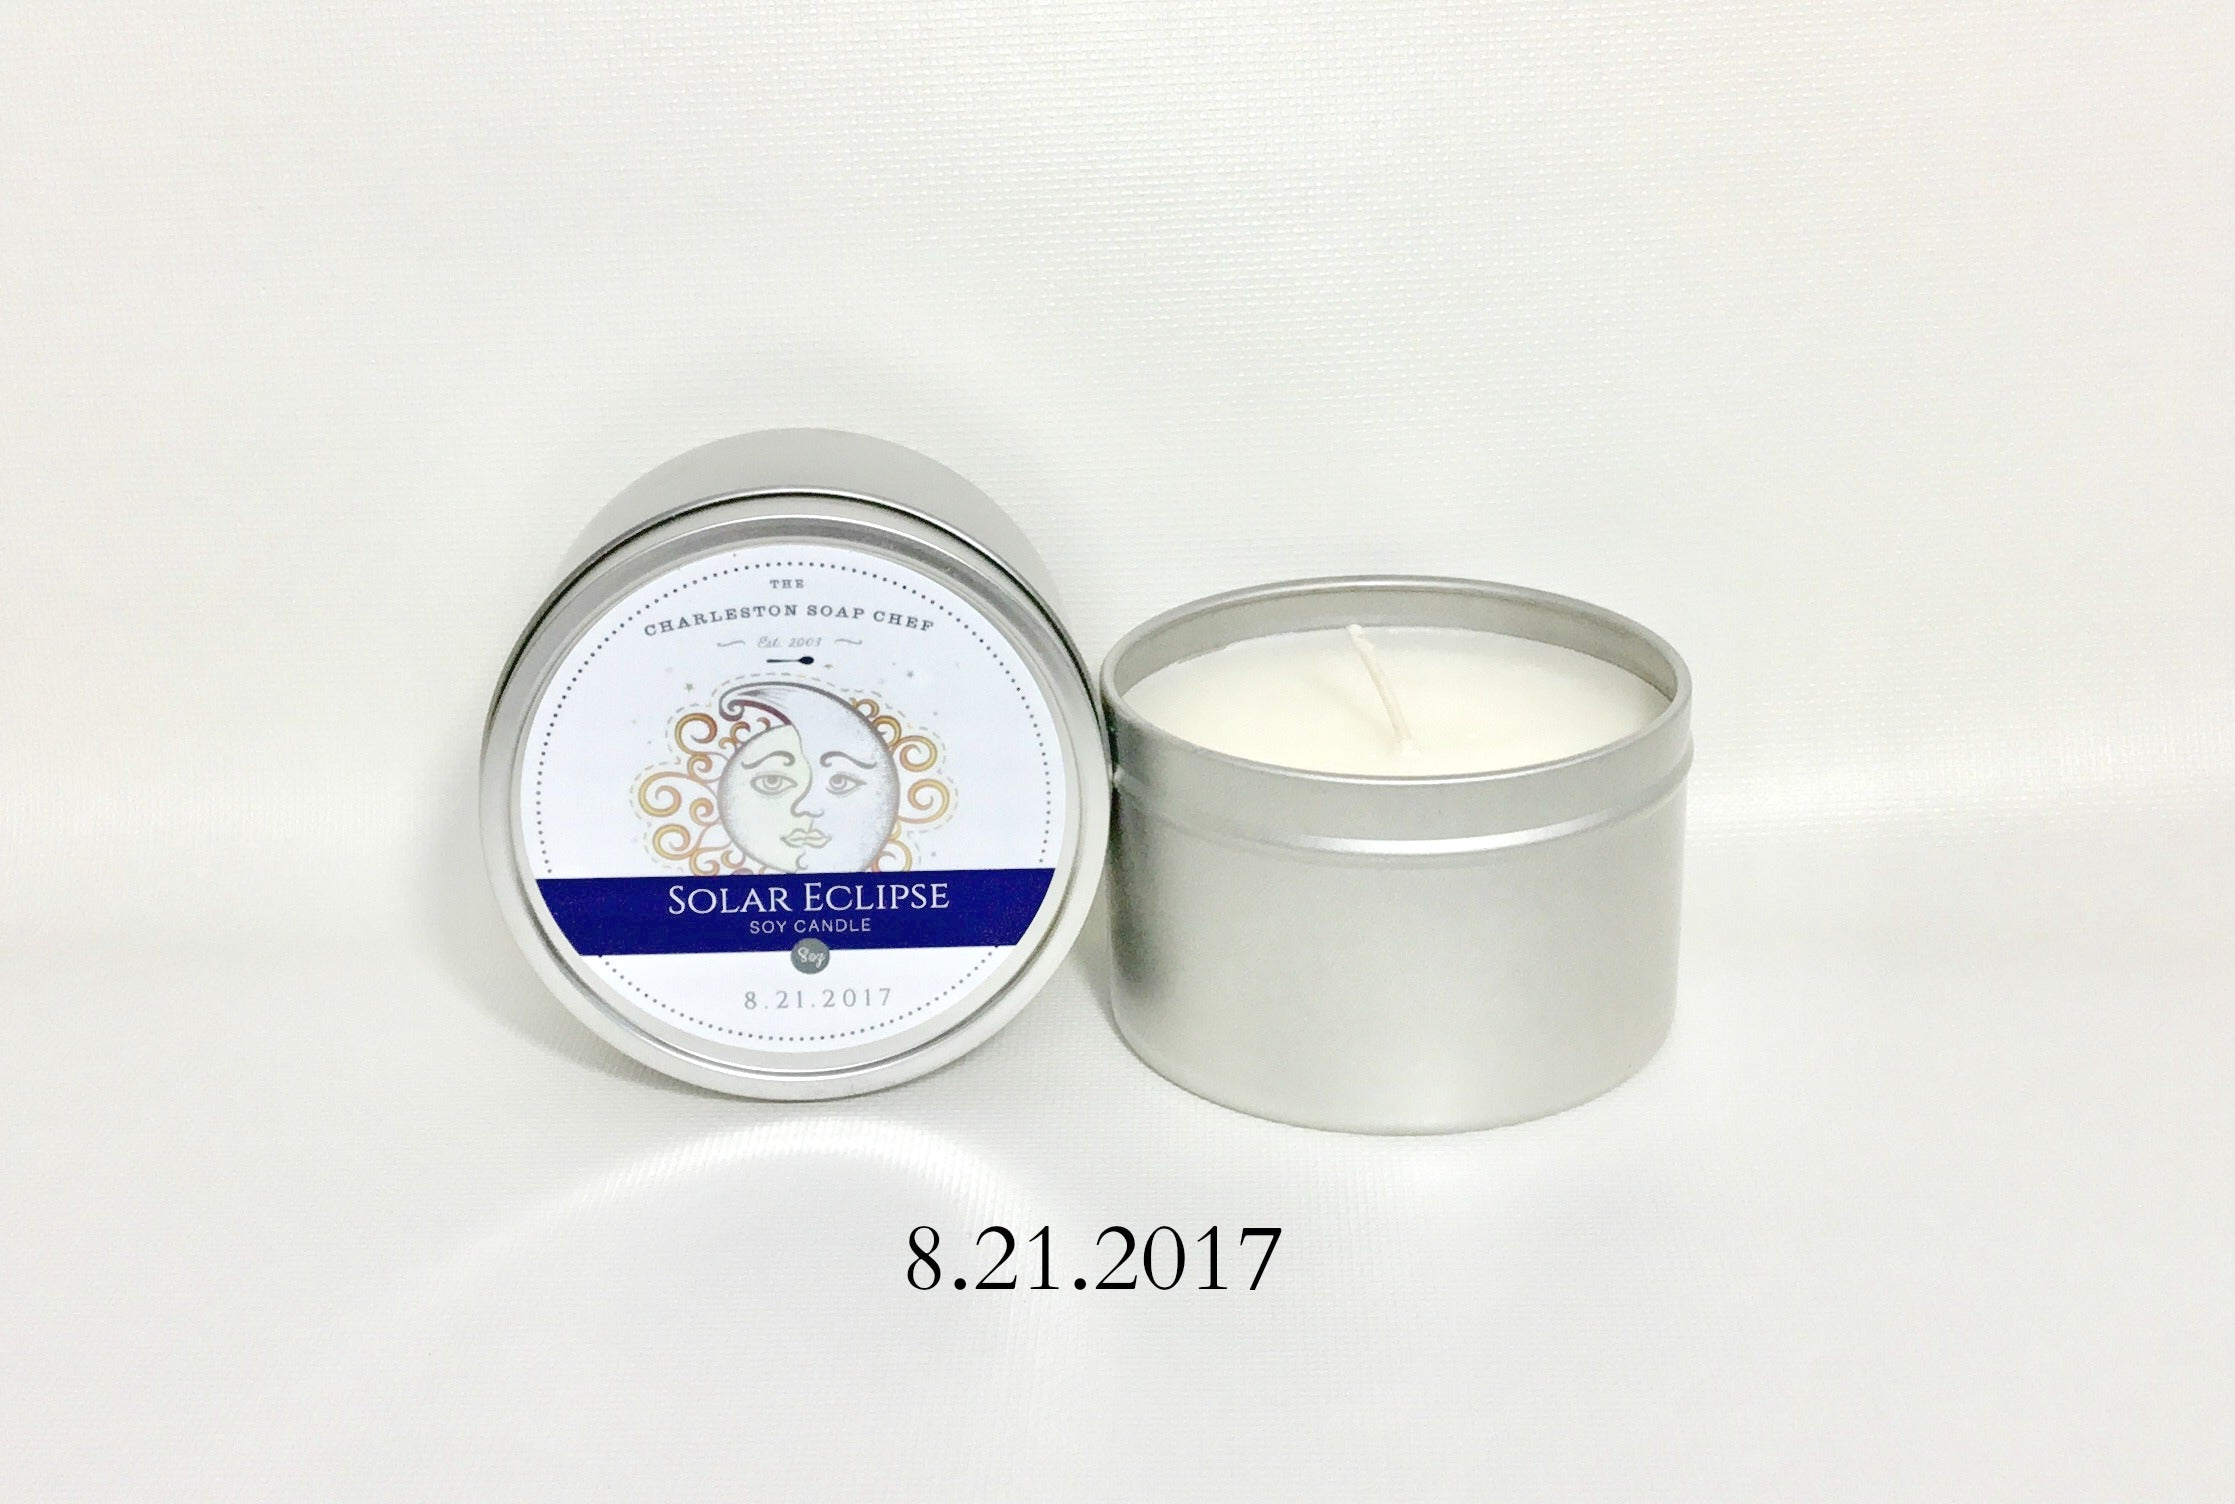 Solar Eclipse Soy Candle